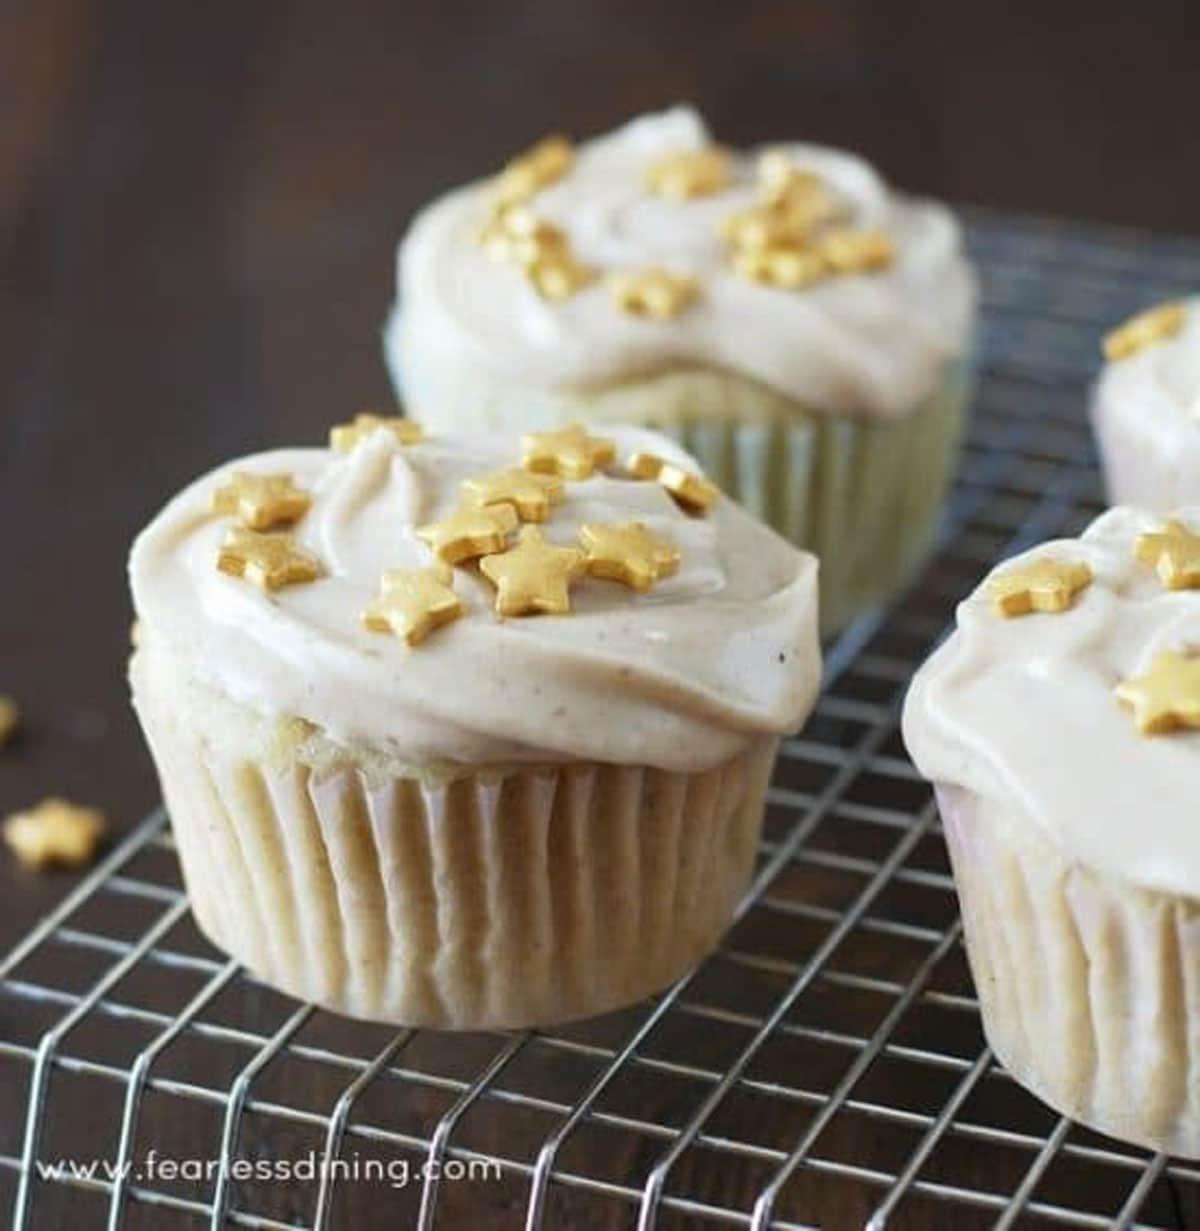 decorated eggnog cupcakes on a rack